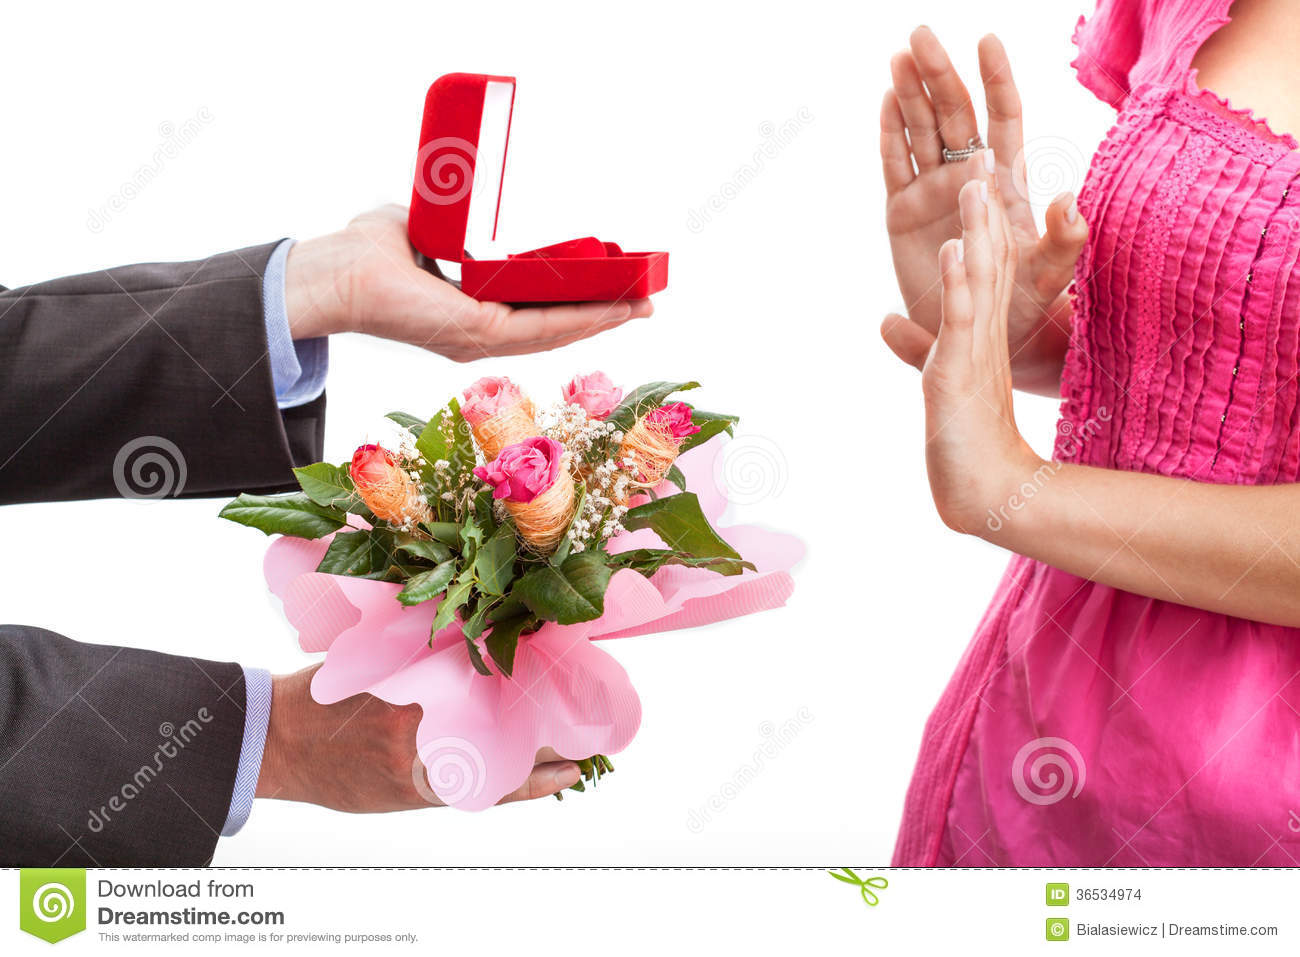 Rejected Proposal Stock Photo. Image Of Apology, Floral